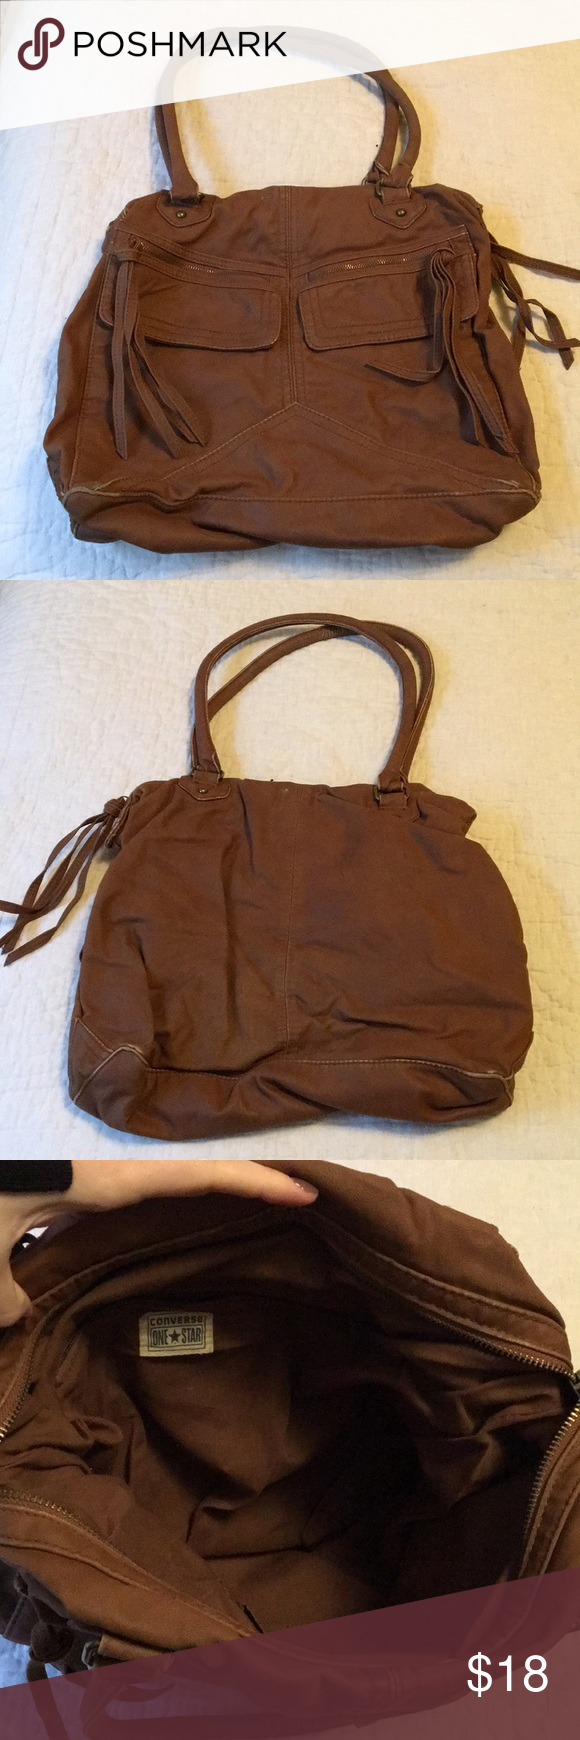 f3c97dcb57bb Target converse vegan leather bag Good used condition. 14 inches wide by 4  inches deep by 13 inches tall. Zip closure Converse Bags